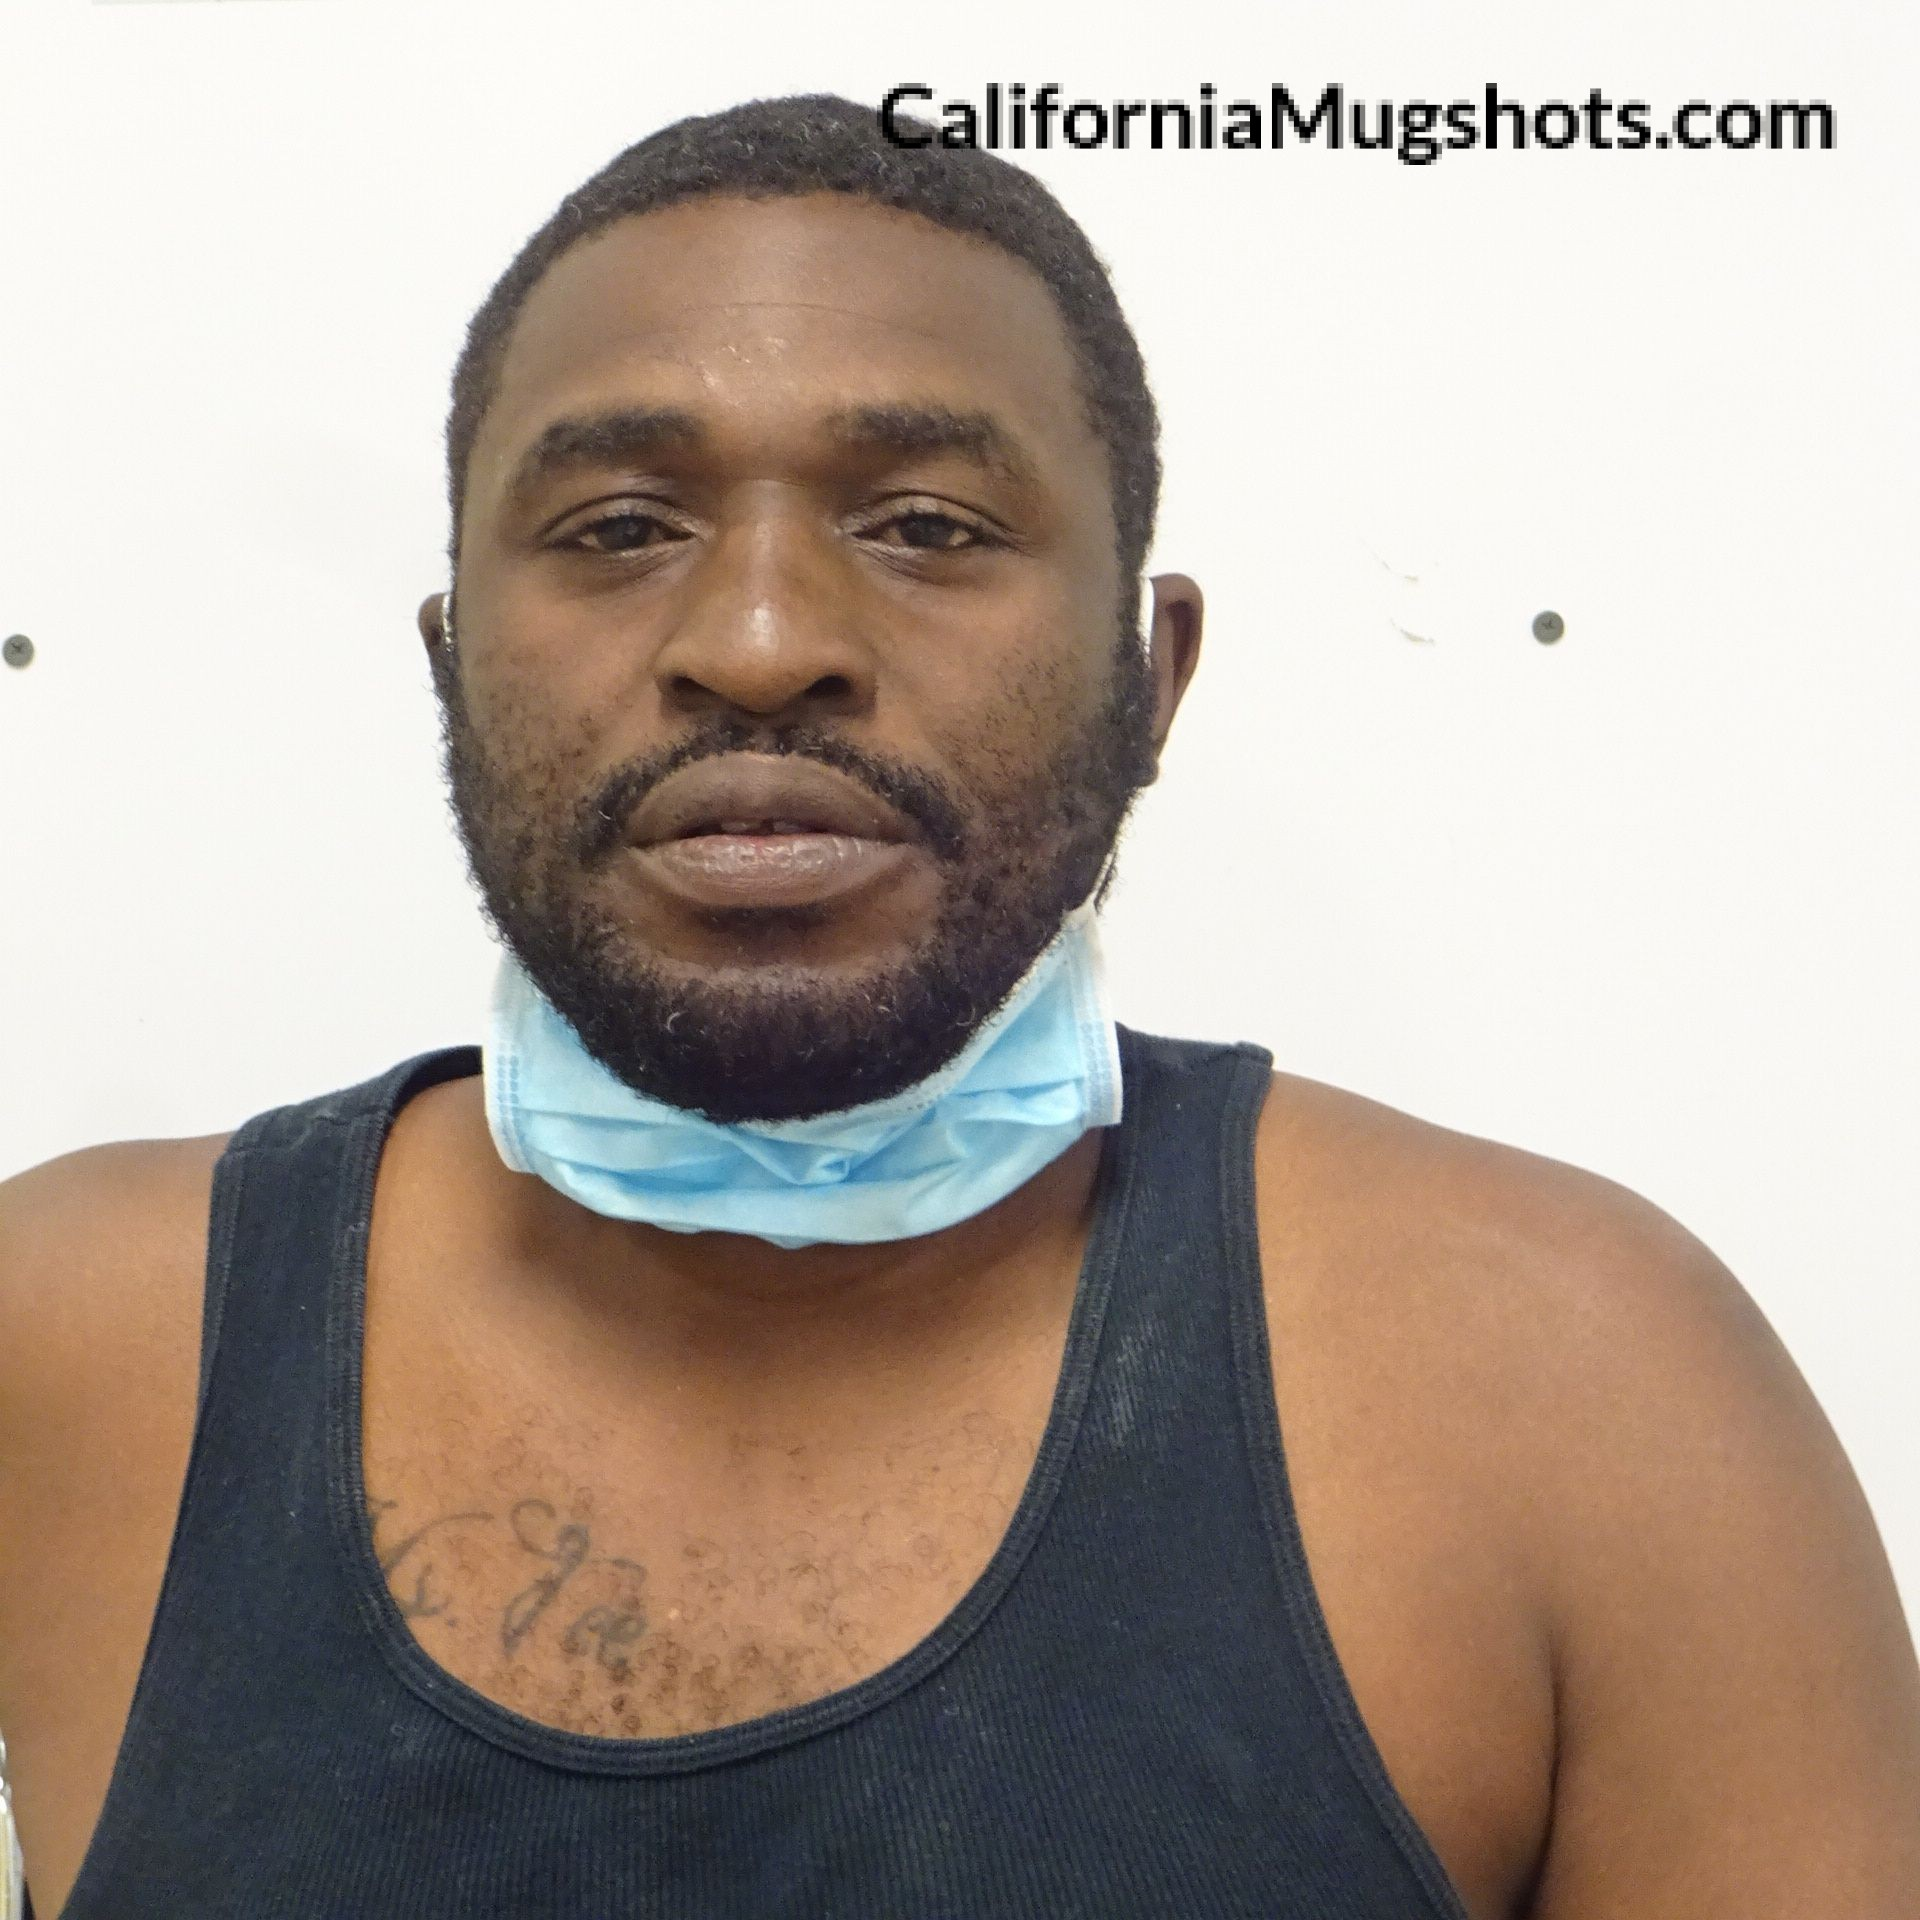 Owens Darnell Hickman arrested in Lake County,CA